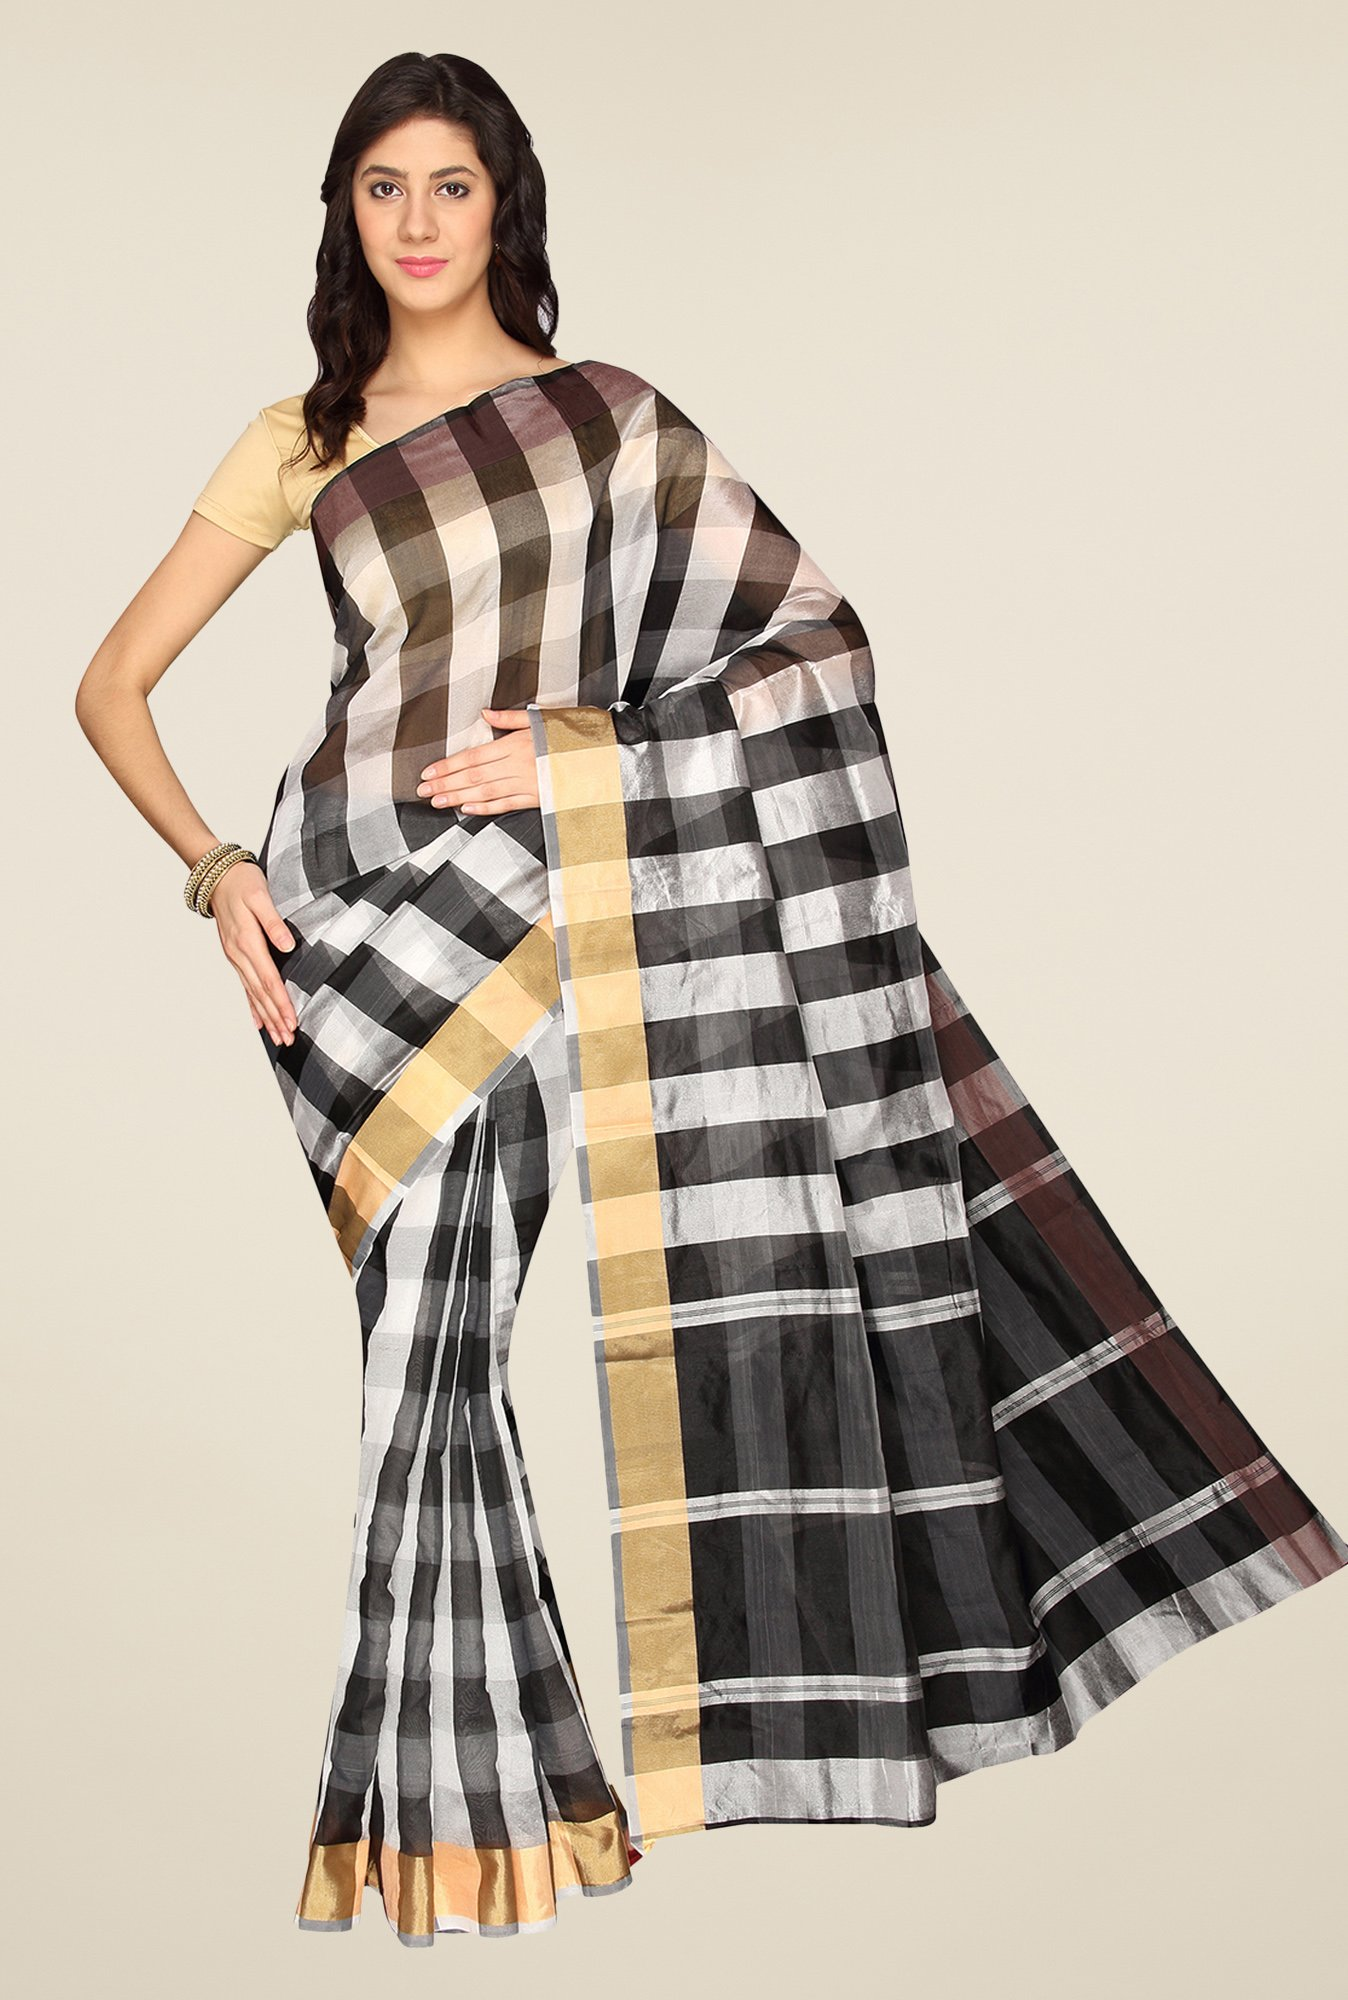 Pavecha's Black & Beige Banarasi Cotton Silk Saree